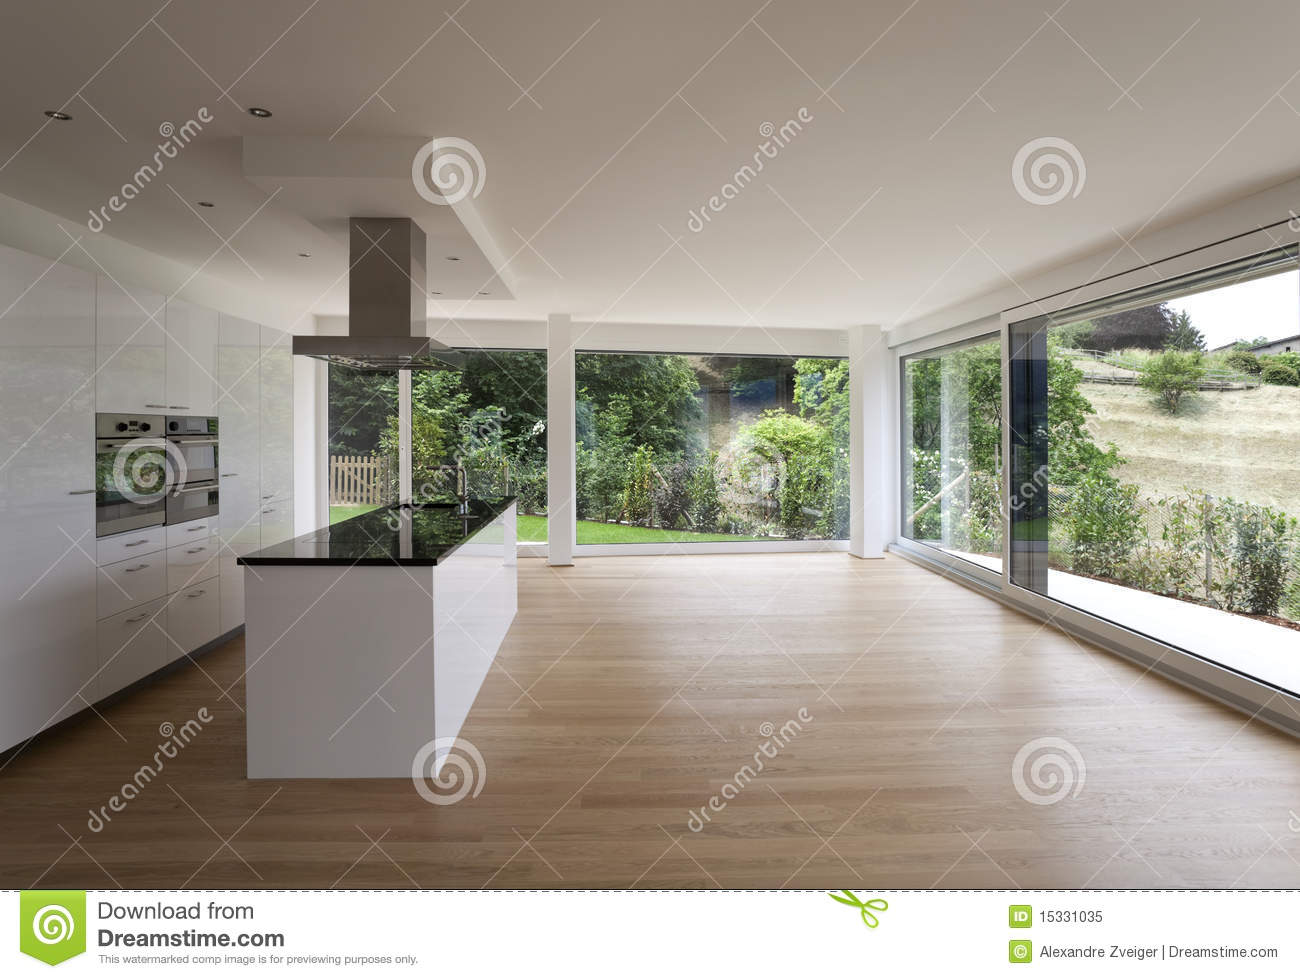 Bel int rieur d 39 une maison moderne image stock image for Interieur de maison contemporaine